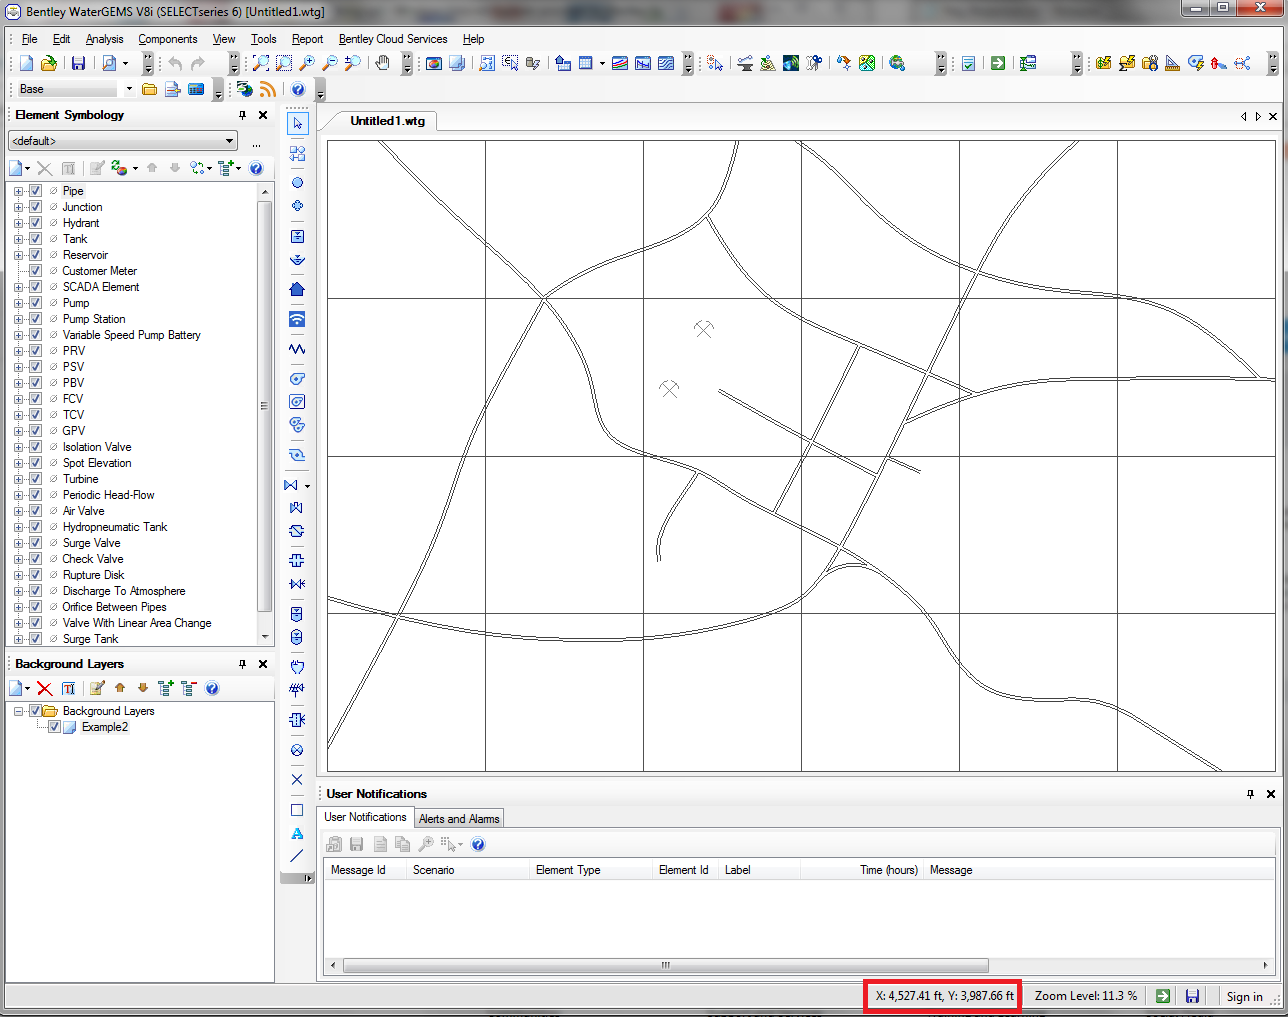 When importing a DXF or shapefile as a background, it does